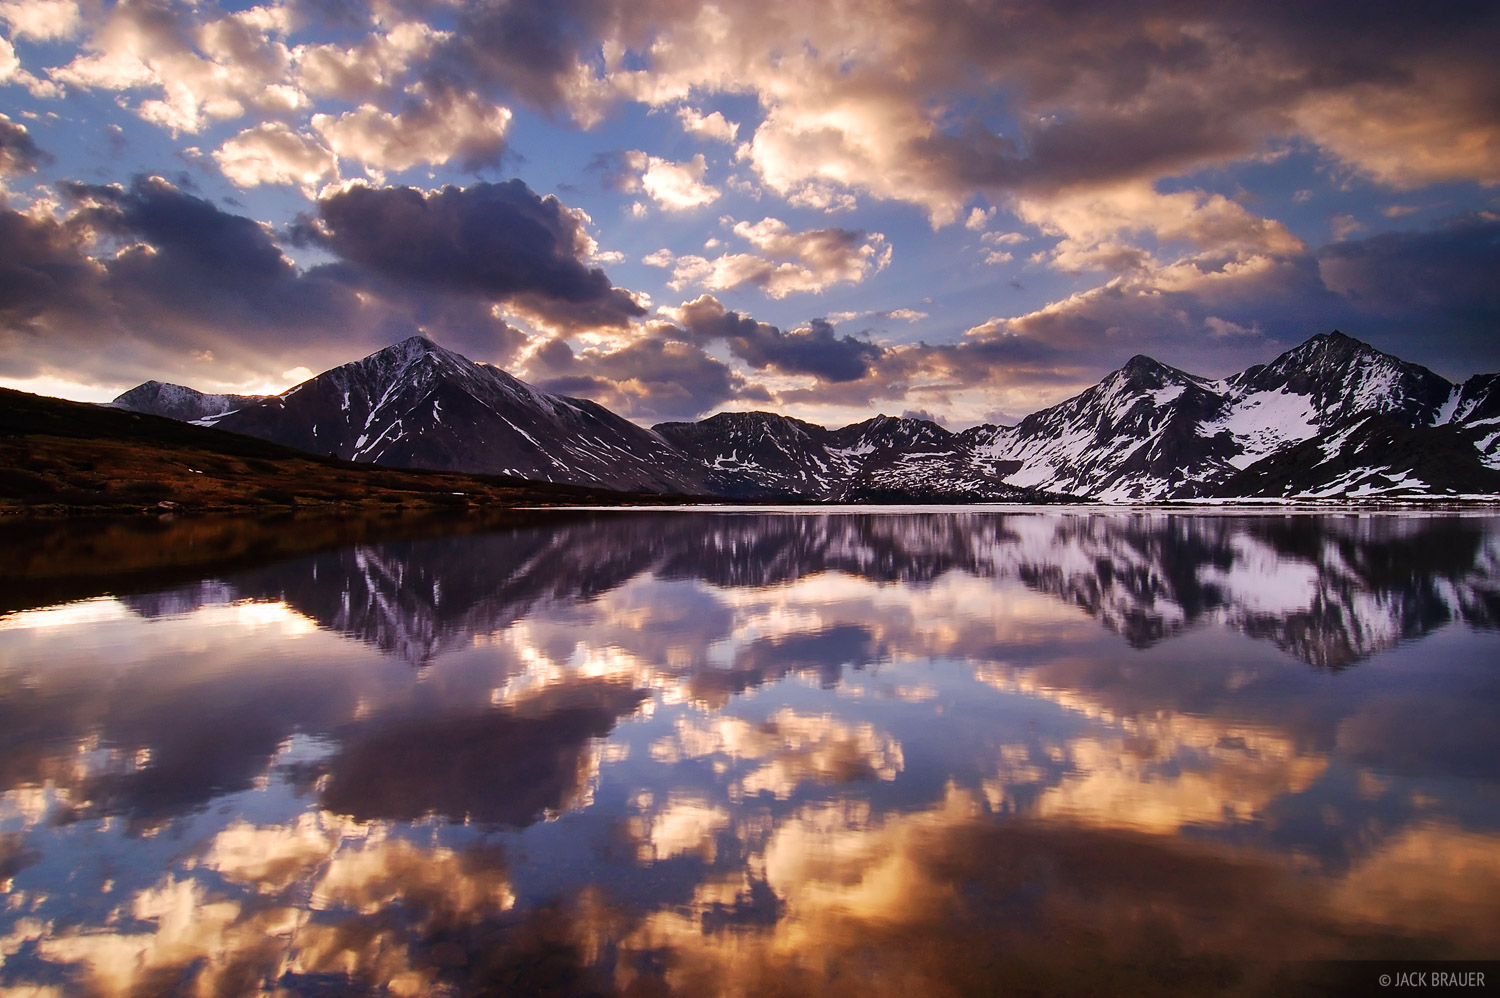 Huron Peak, North Apostle, Ice Mountain, reflection, Colorado, photo